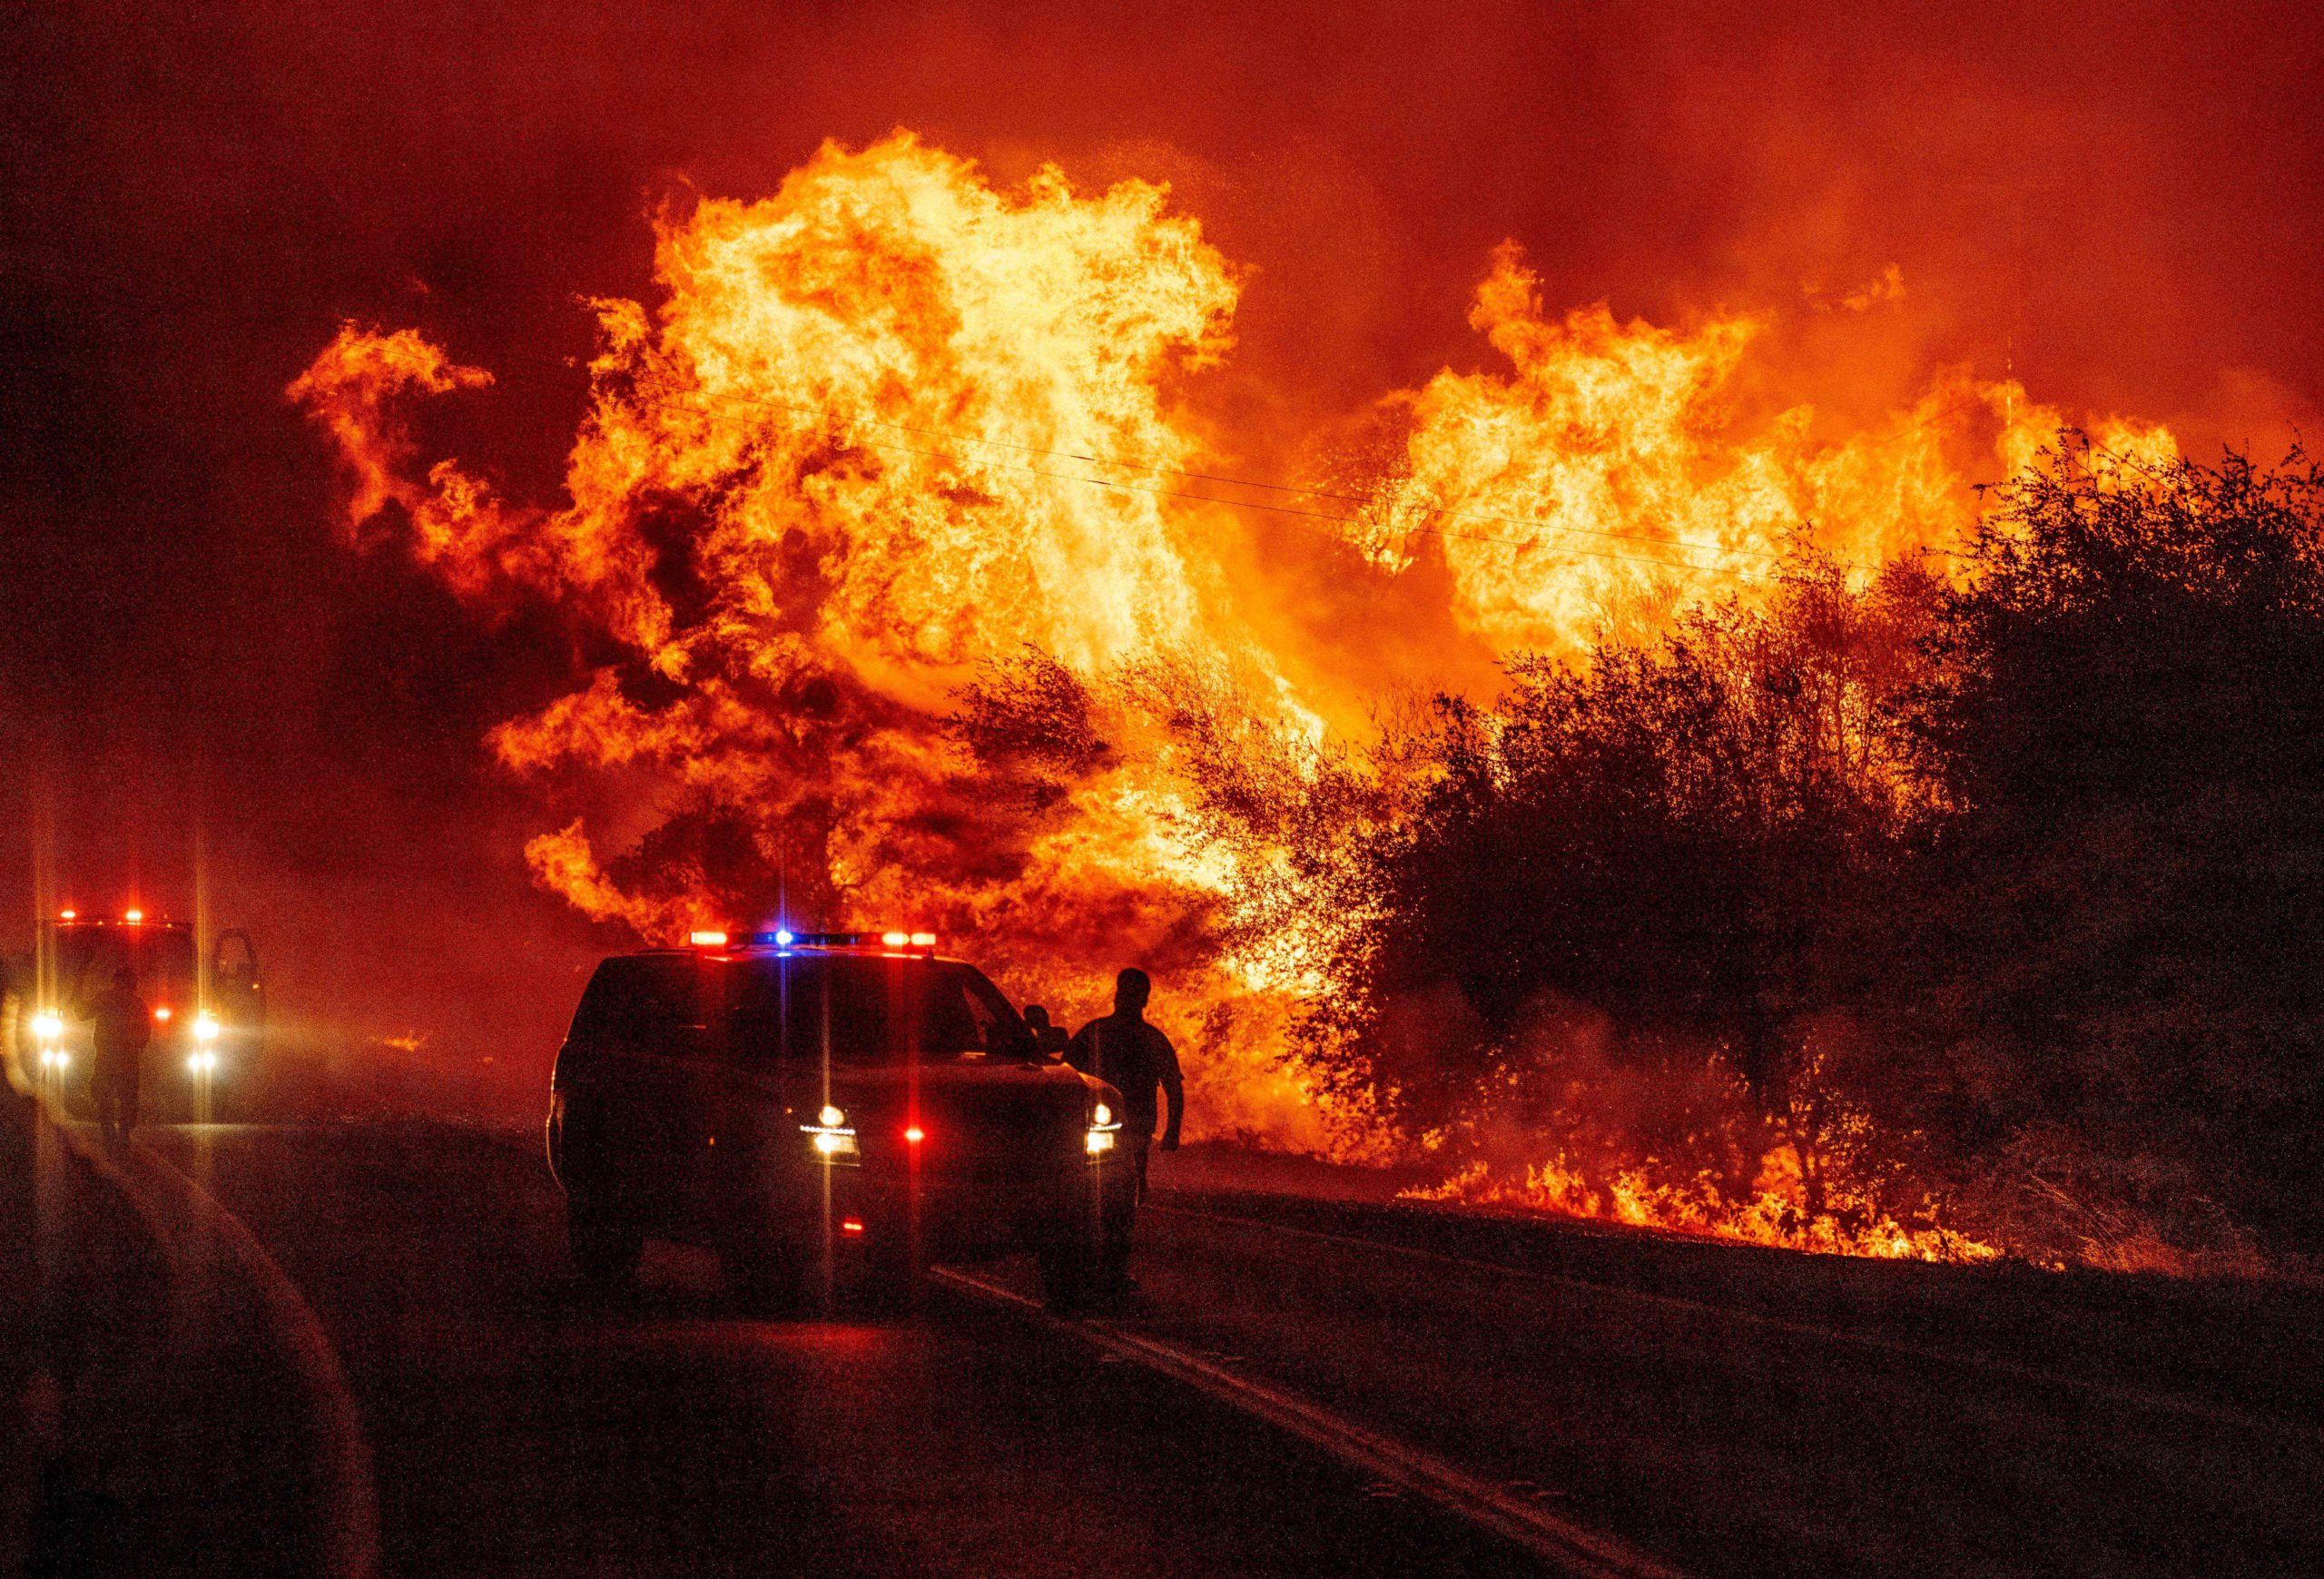 A law enforcement officer watches flames launch into the air as fire continues to spread at the Bear fire in Oroville, California on September 9, 2020. - Dangerous dry winds whipped up California's record-breaking wildfires and ignited new blazes, as hundreds were evacuated by helicopter and tens of thousands were plunged into darkness by power outages across the western United States. (Photo by JOSH EDELSON/AFP via Getty Images)